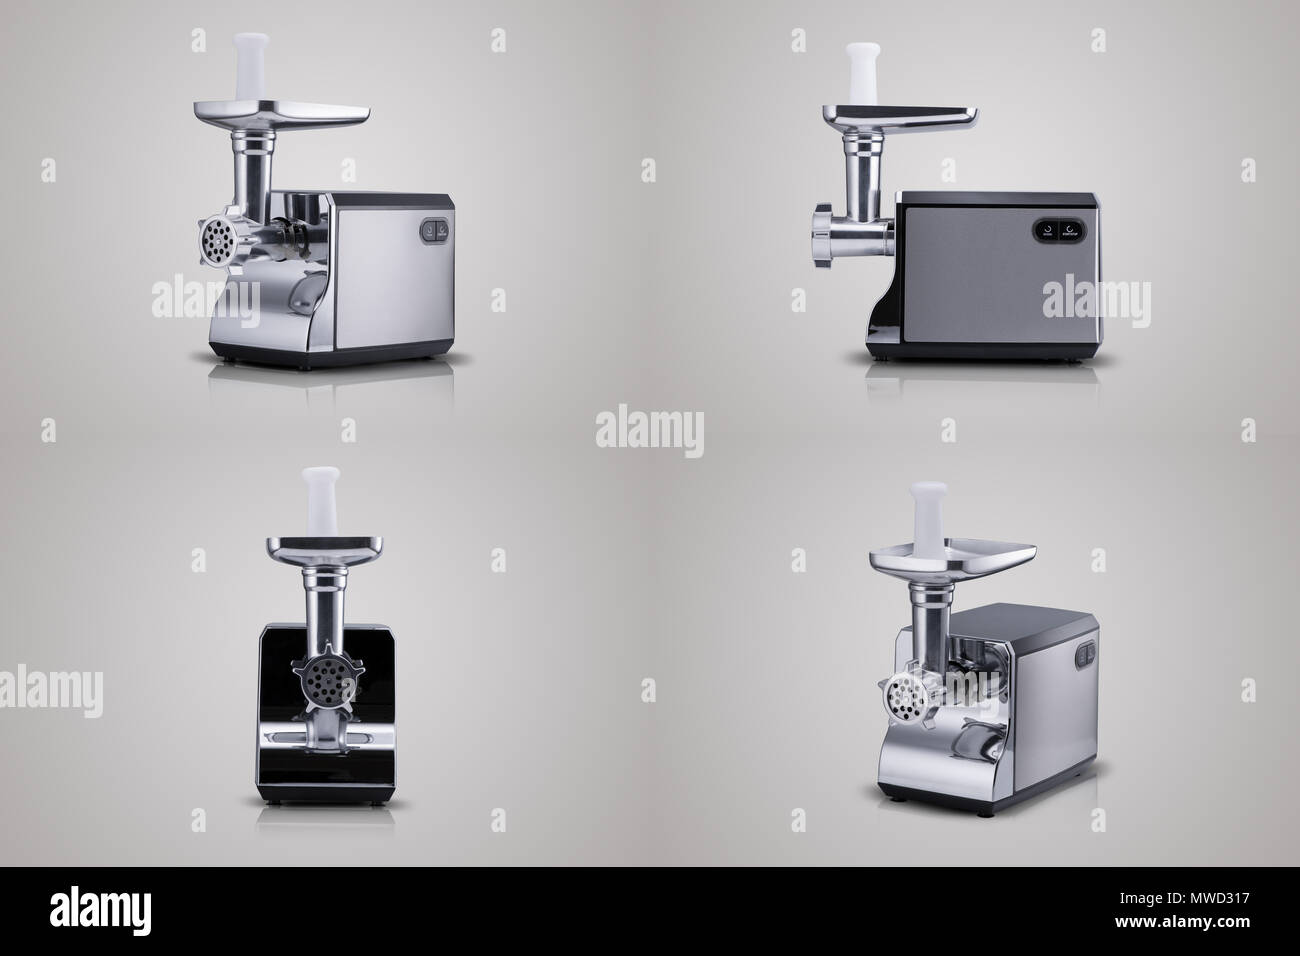 household electric meat grinder on a light gray background ...